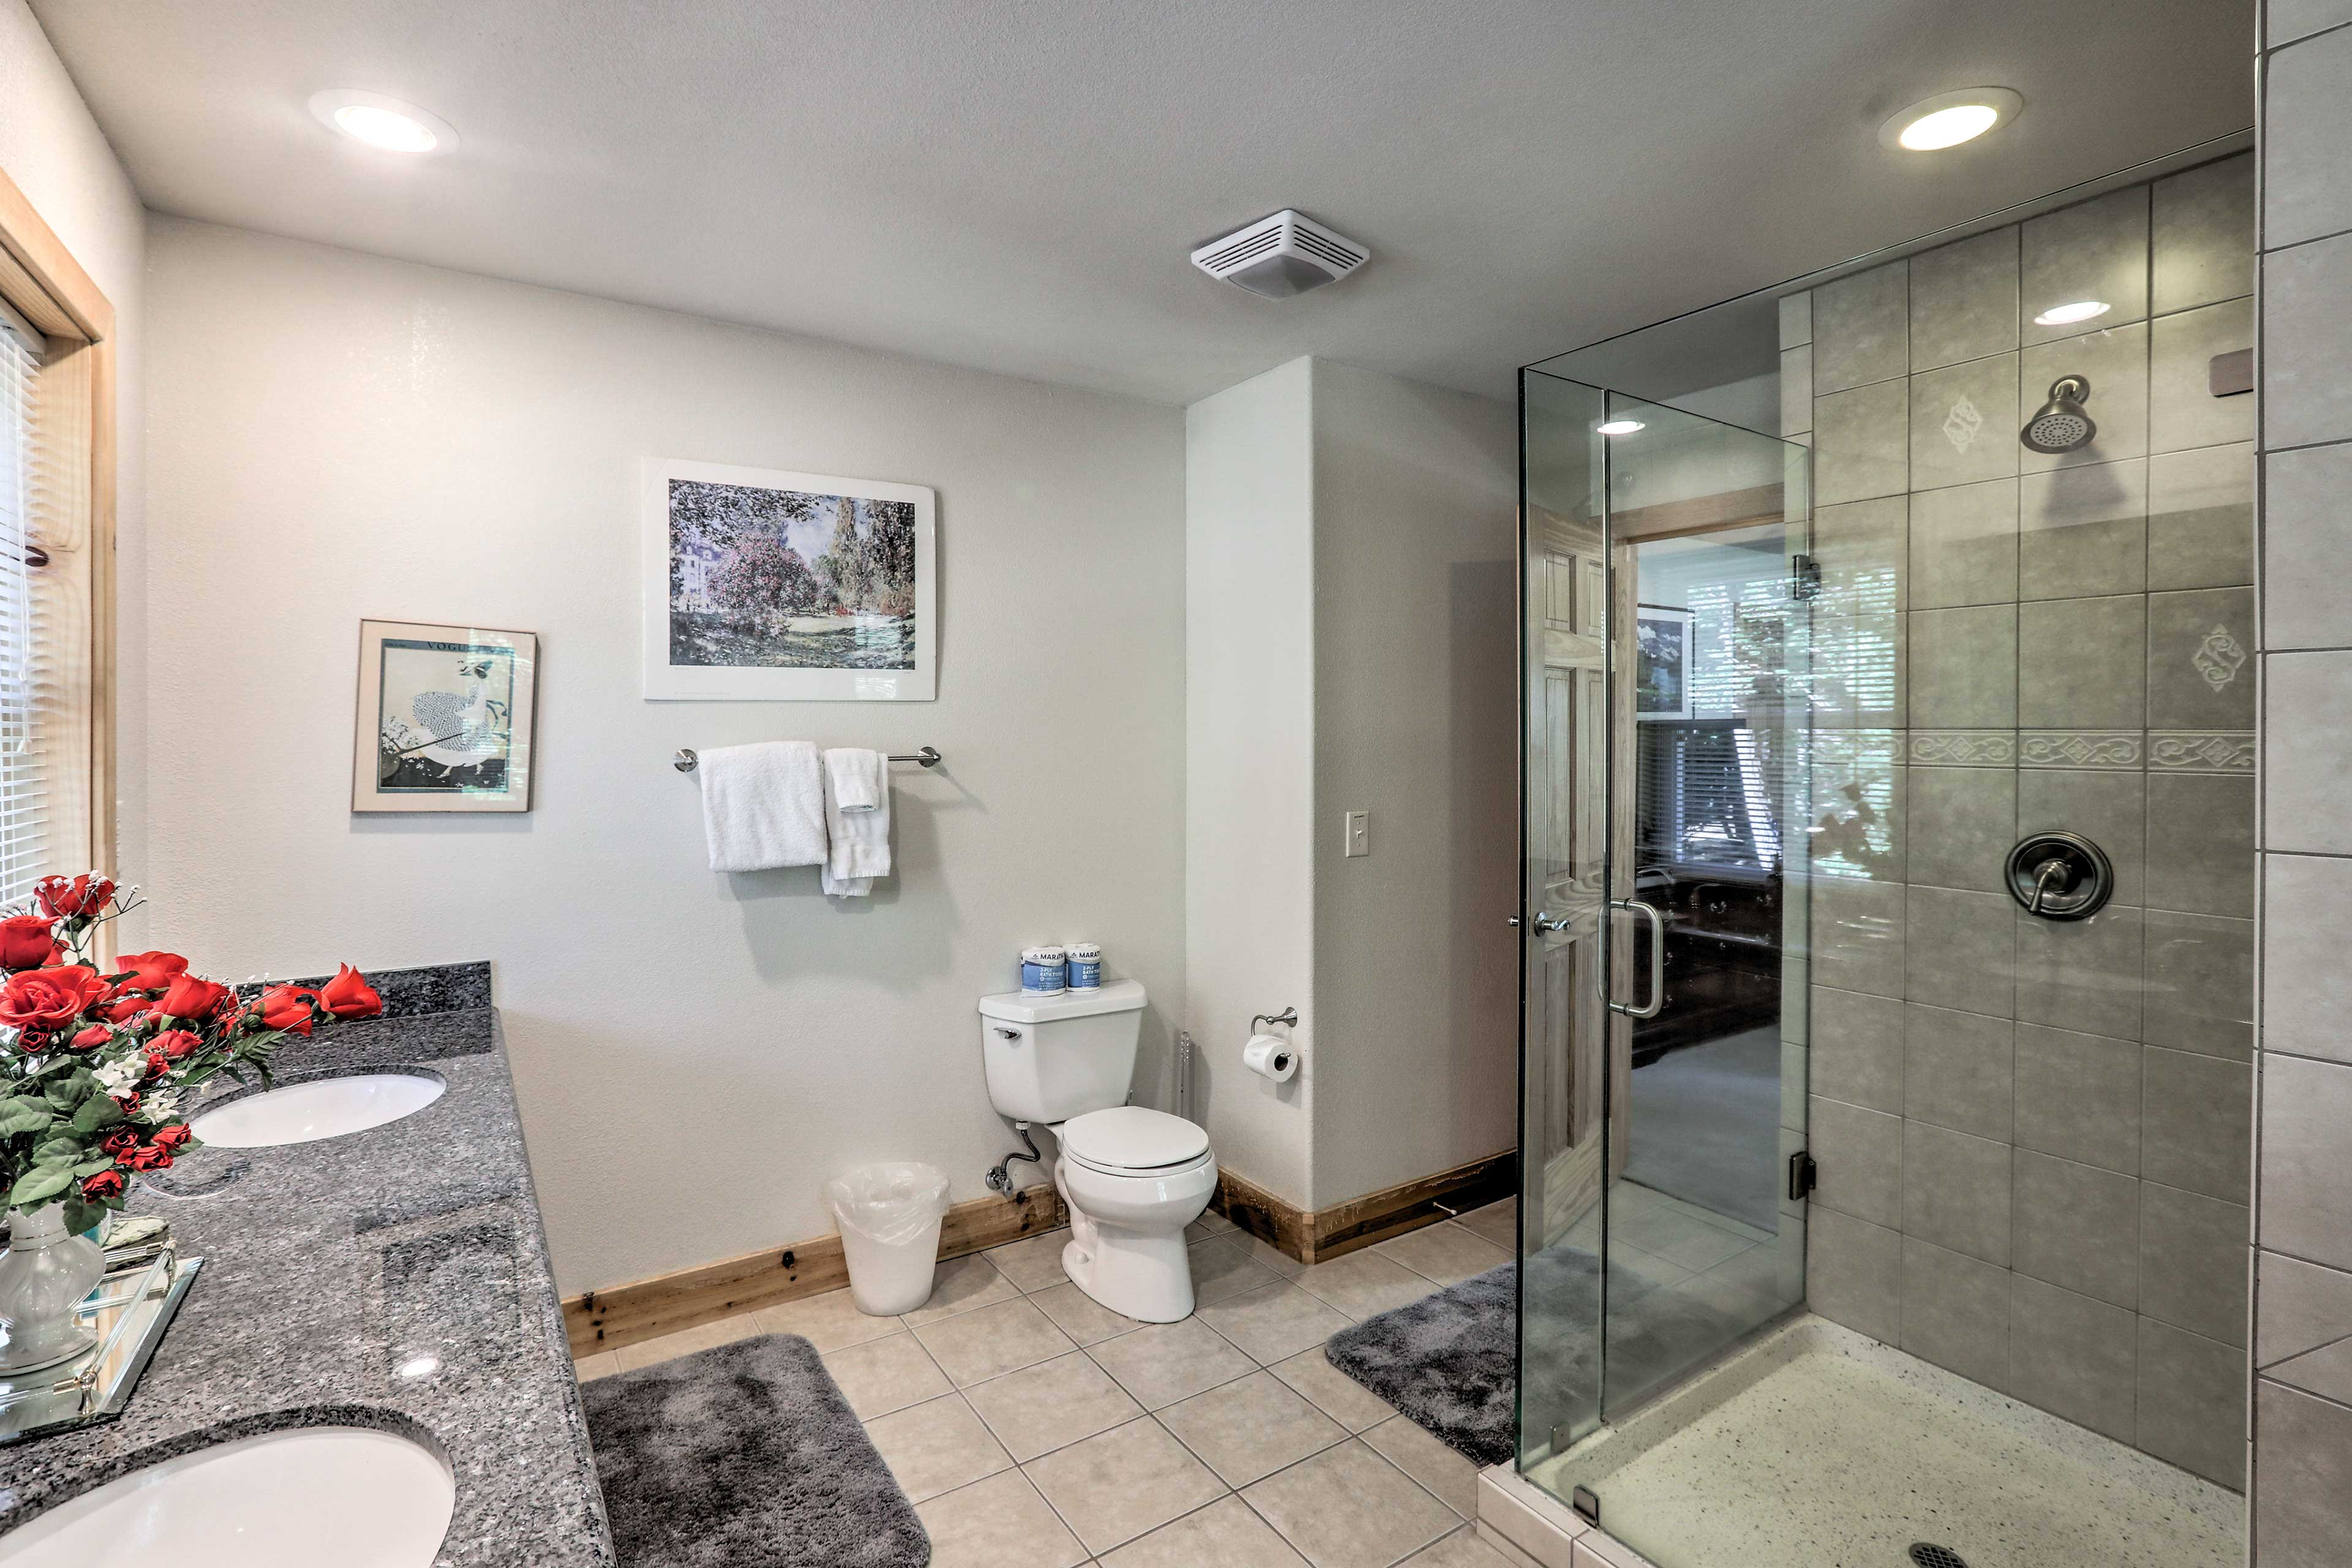 The pristine en-suite bathroom is perfect for rinsing off.